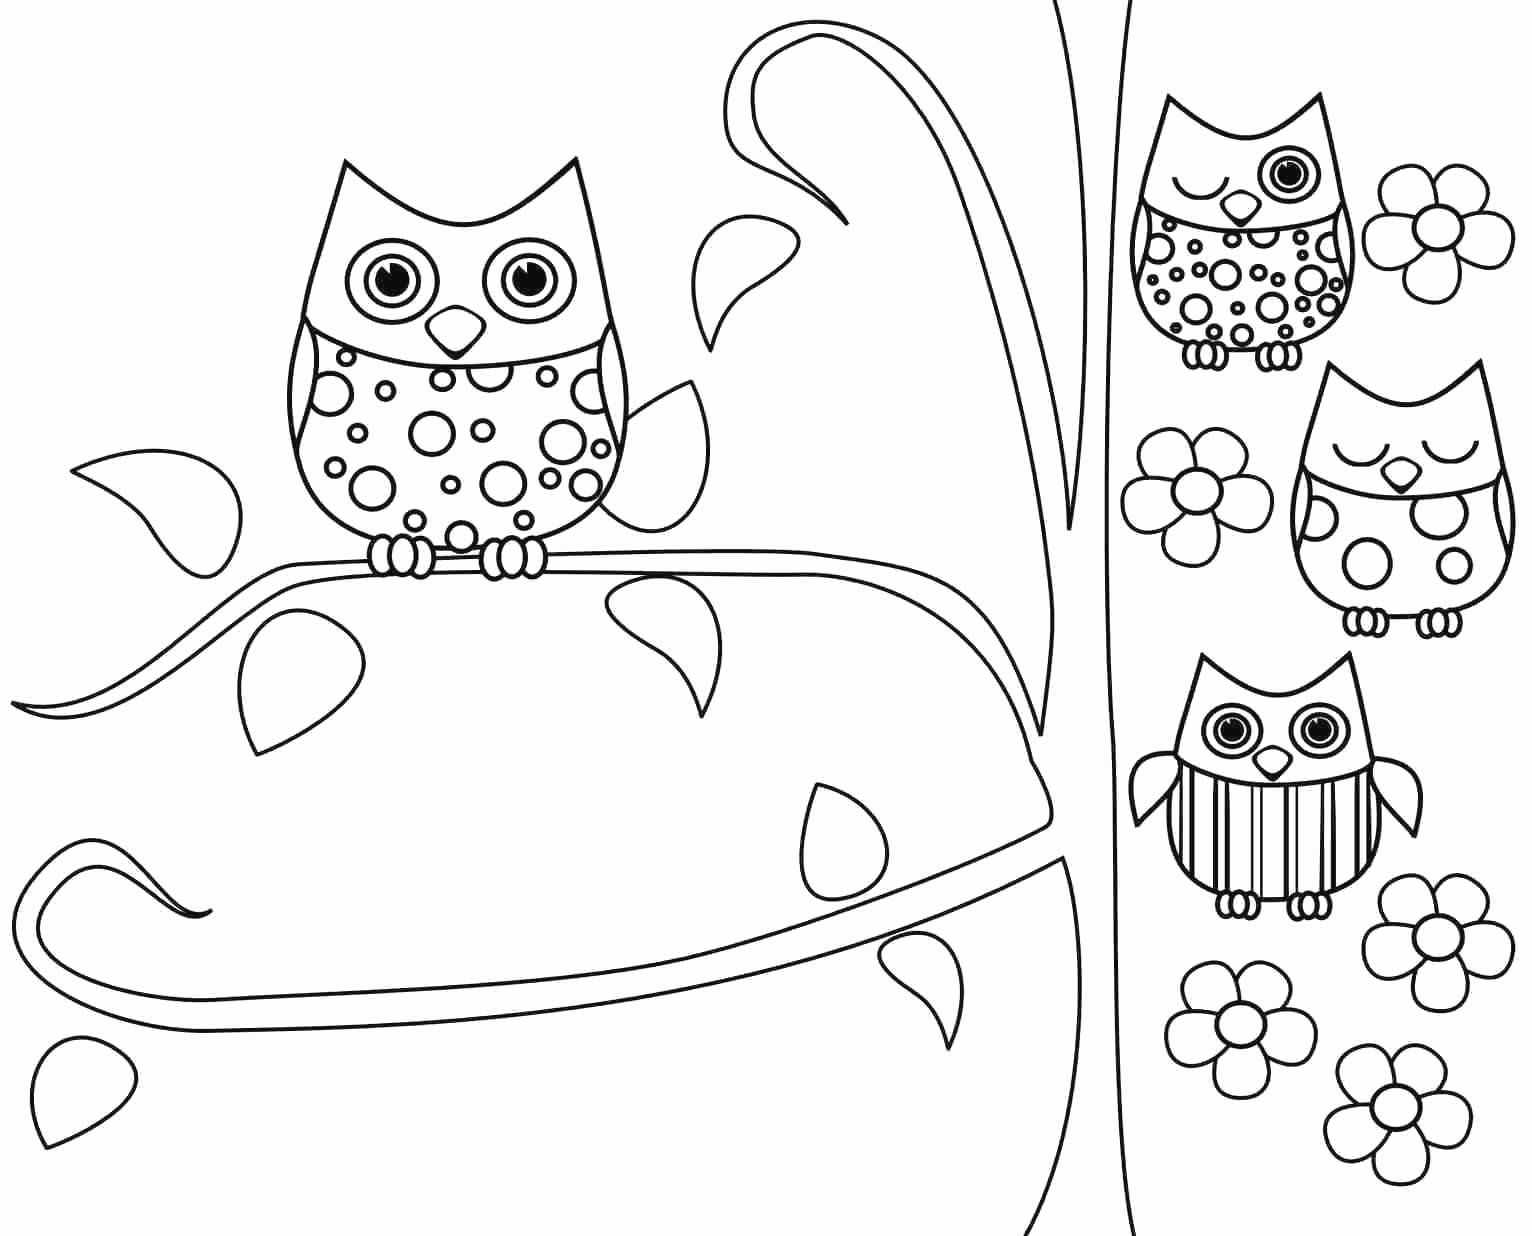 Coloring Book Cartoons Unique Fresh Owl Christmas Coloring Sheets Nocn Owl Coloring Pages Cute Coloring Pages Animal Coloring Pages